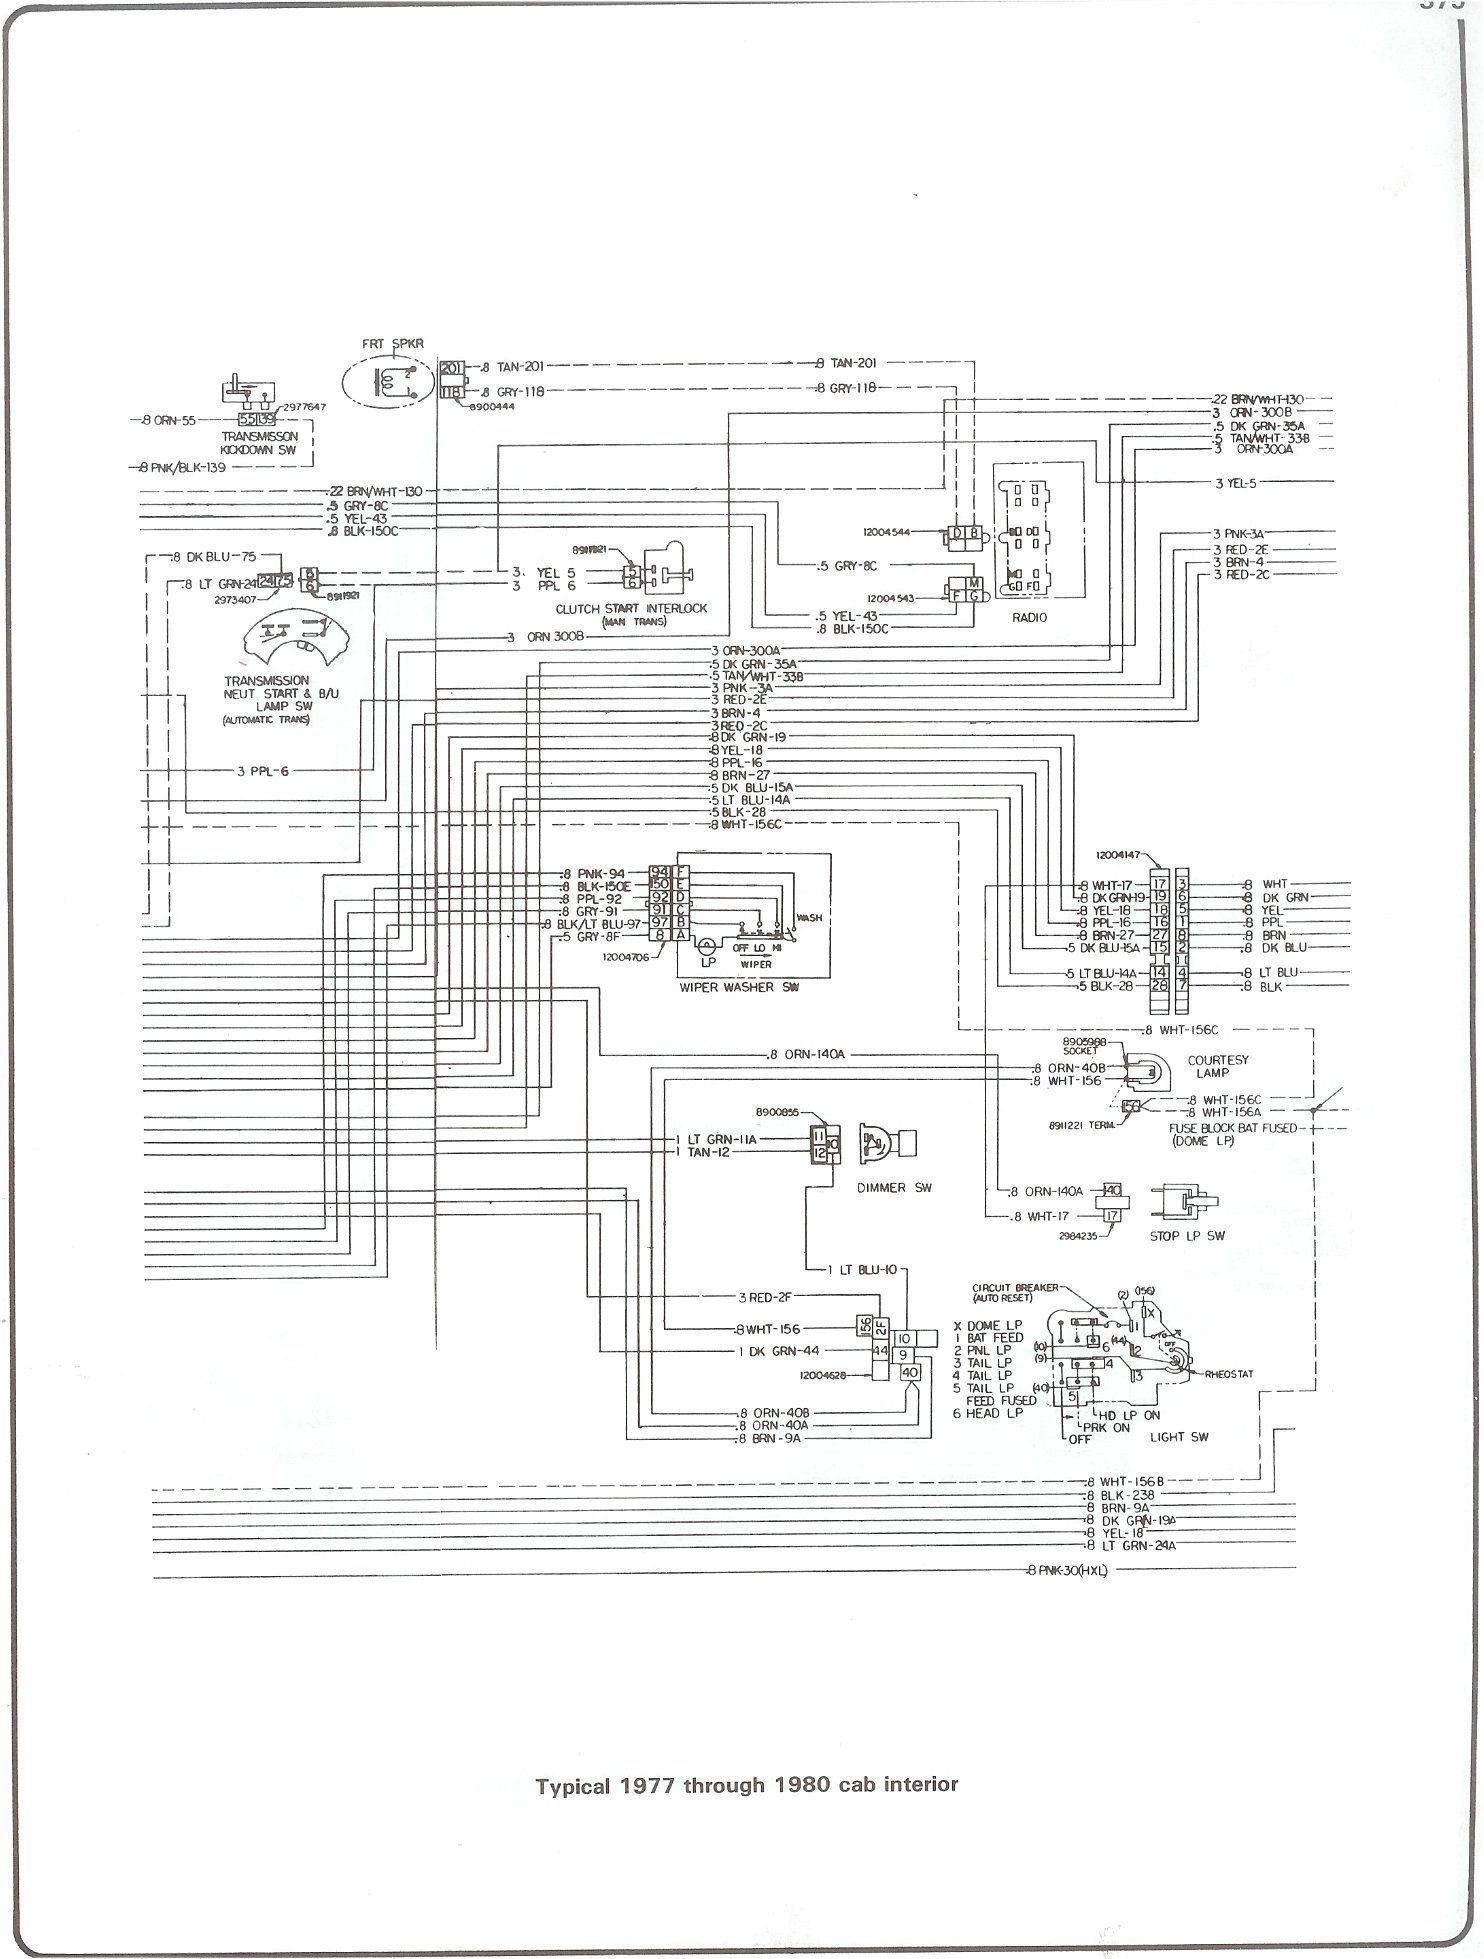 86 Gmc Wiring Diagram List Of Schematic Circuit International 9900i Complete 73 87 Diagrams Rh Forum 87chevytrucks Com